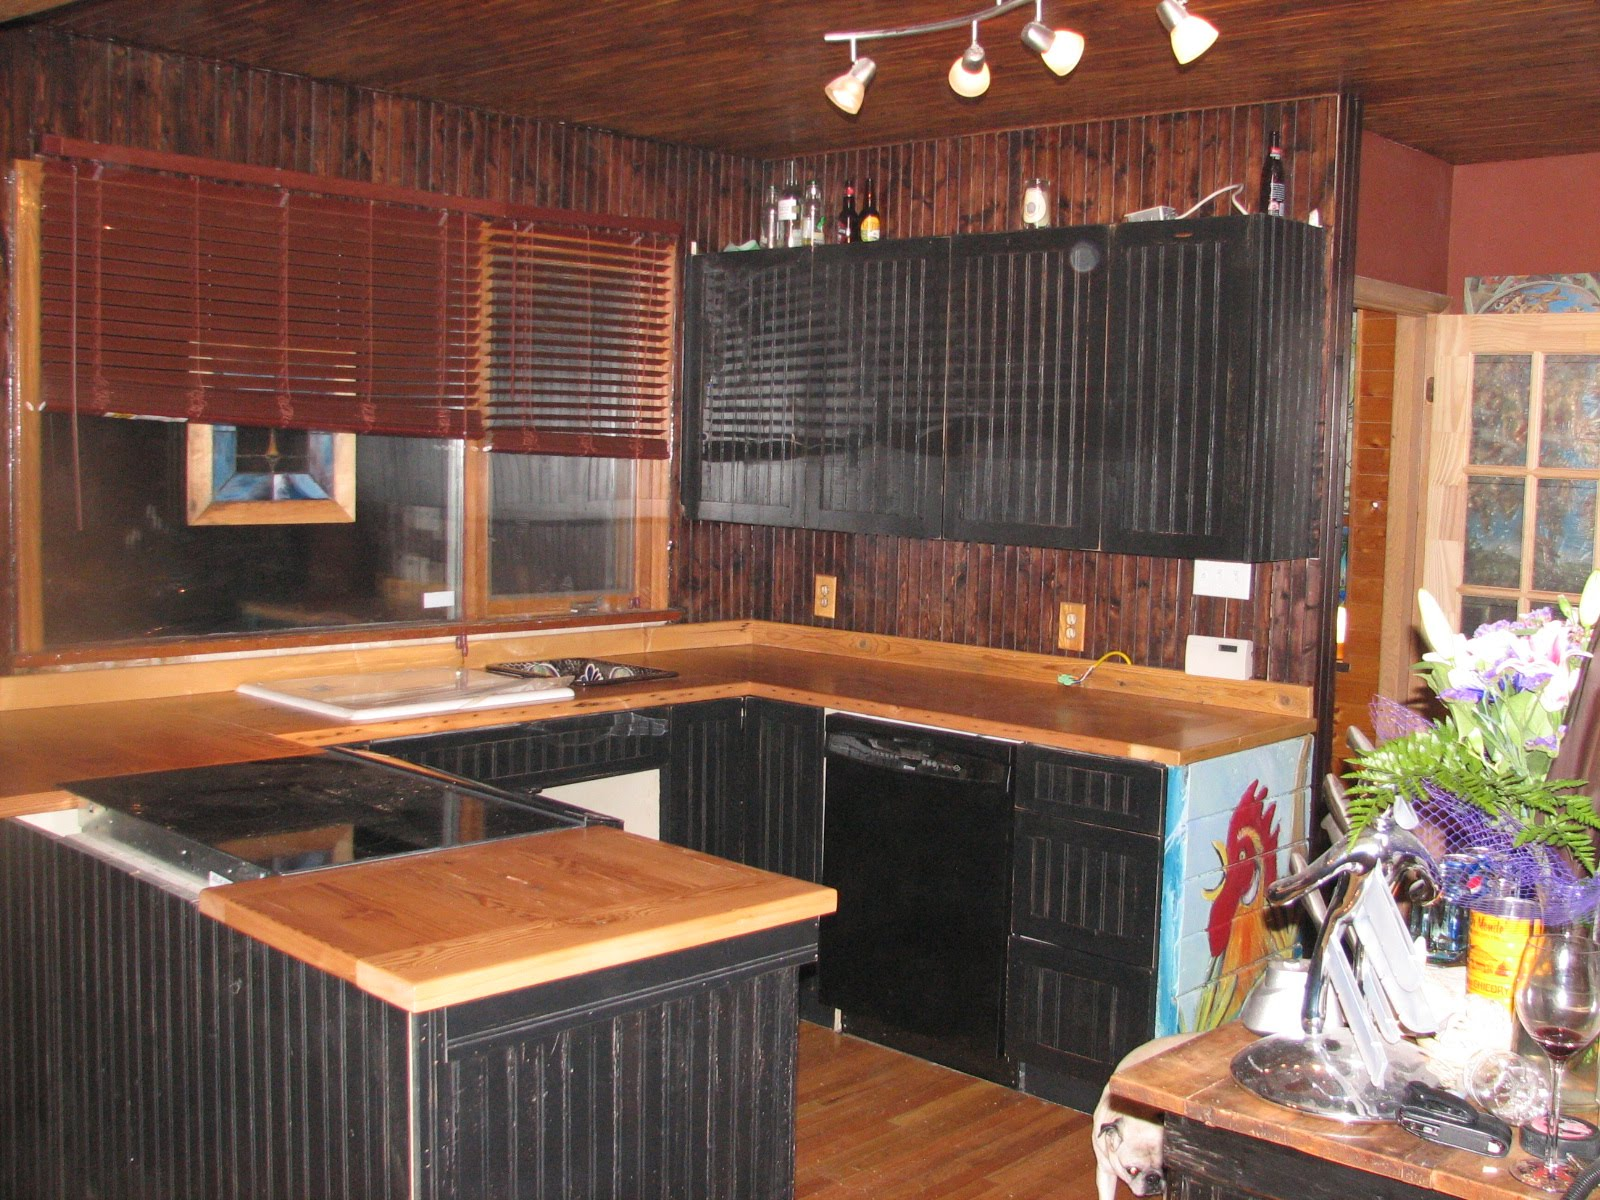 fantastic kitchen American Woodmark Cabinets in black with wooden counrtop with oven for wood theme of kitchen decoration